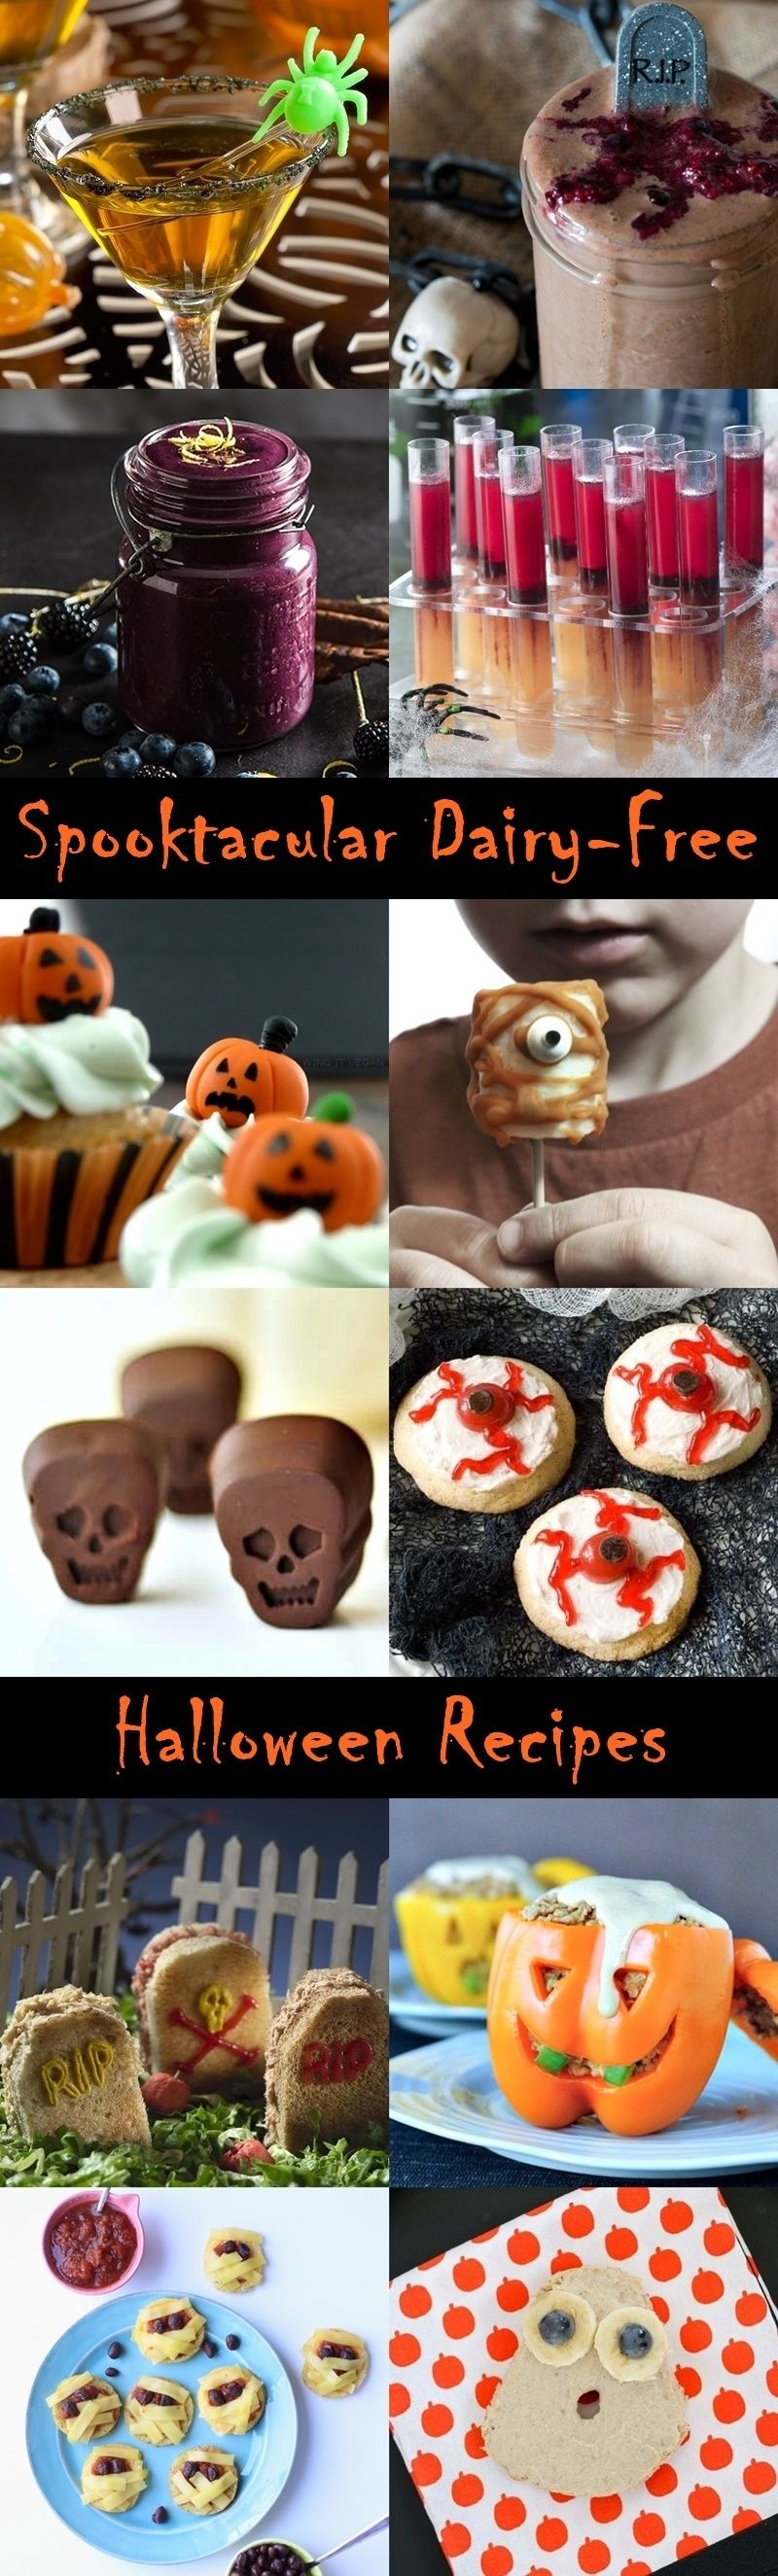 The Big List of Ghoulishly Good Dairy-Free Halloween Recipes ...